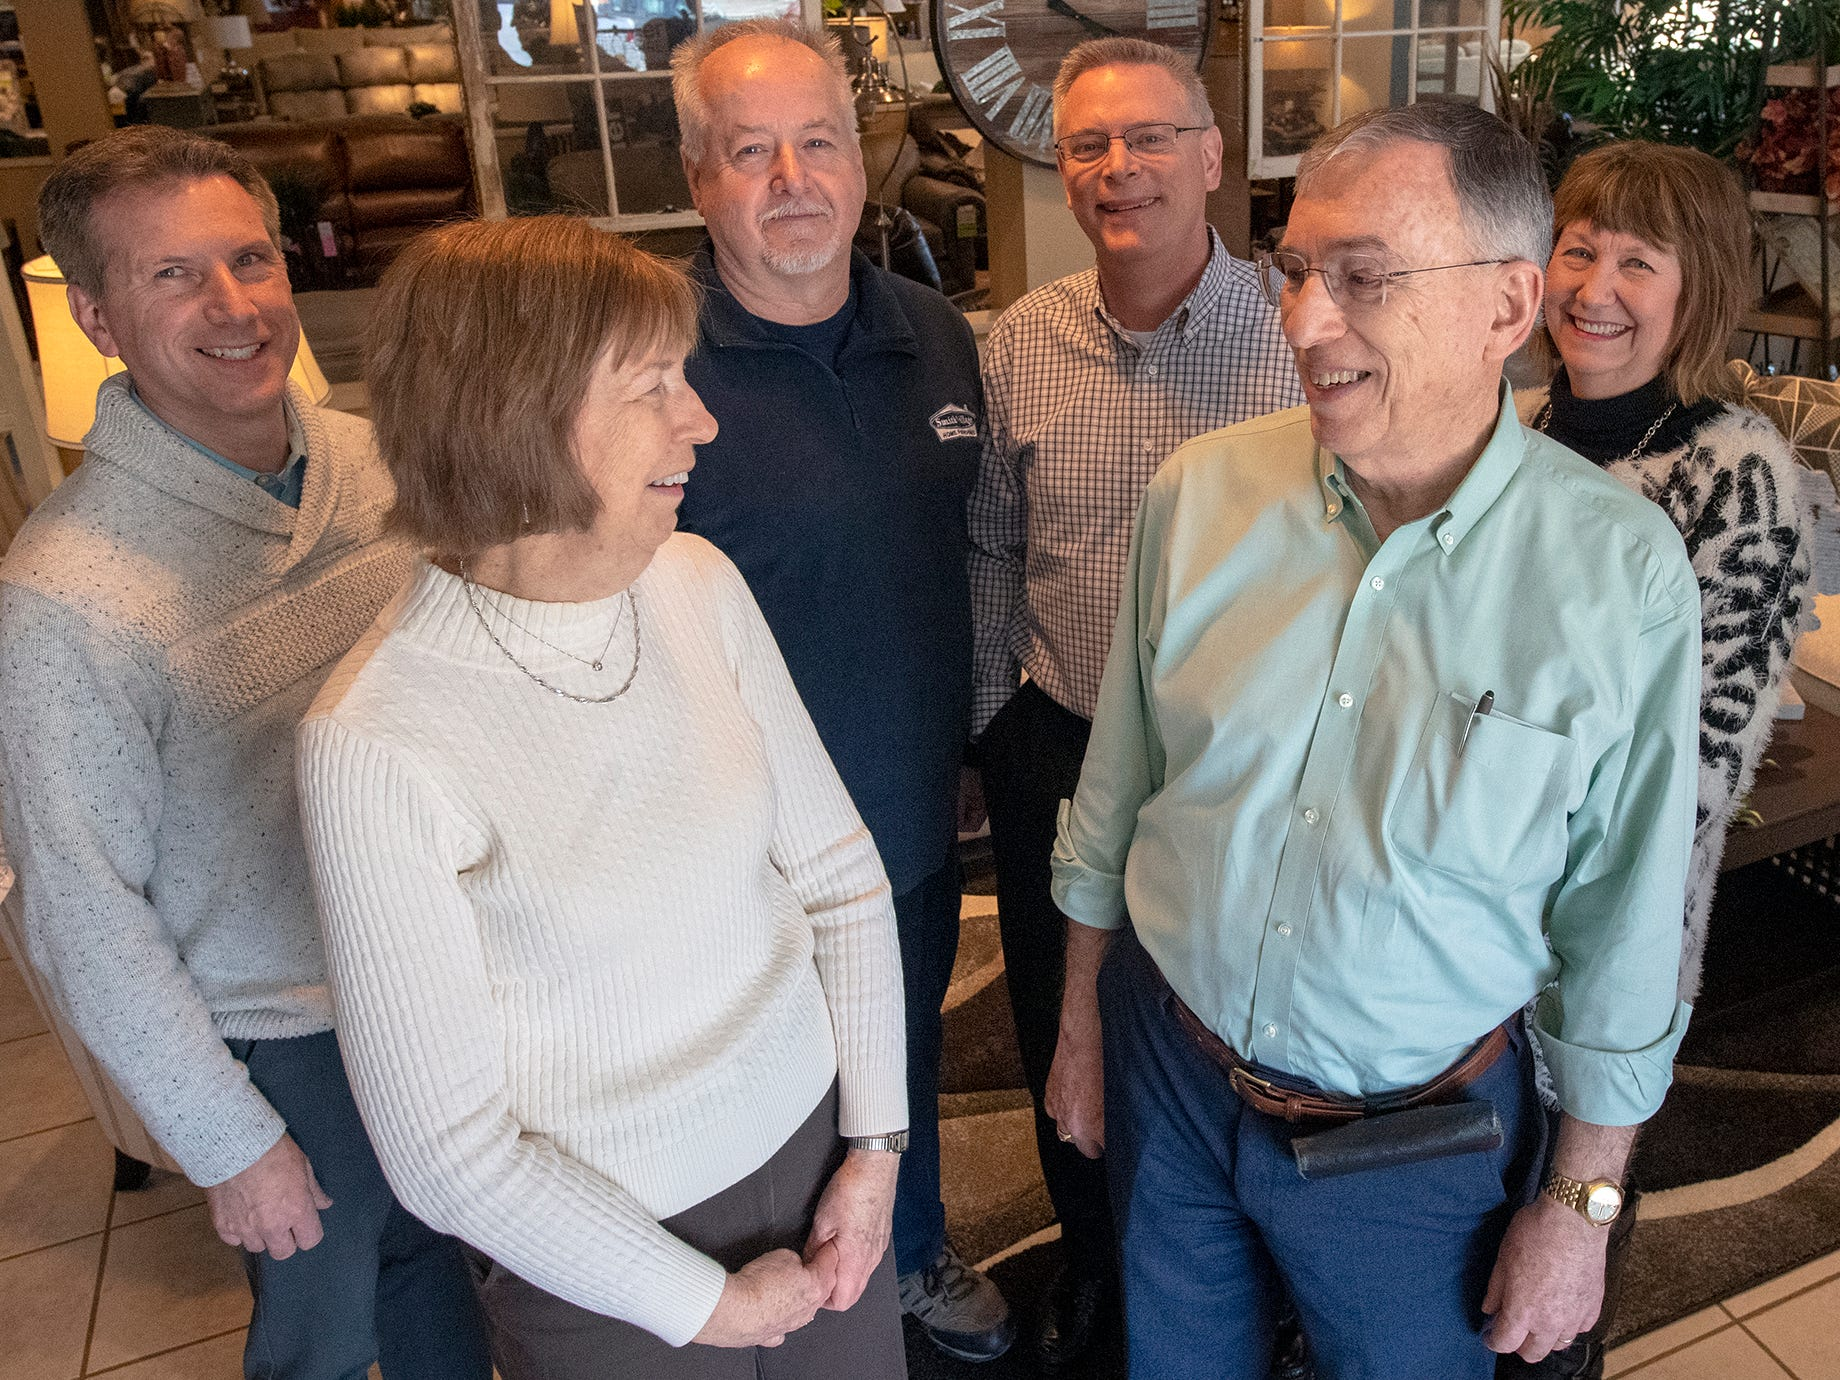 In the front row, current owners Susan Hake (Smith) and Dallas Smith stand with current managers, second row from the left, Bill Ream, Gary Inners, Mark Warner and Colleen Schaffner, who will take over Smith Village.